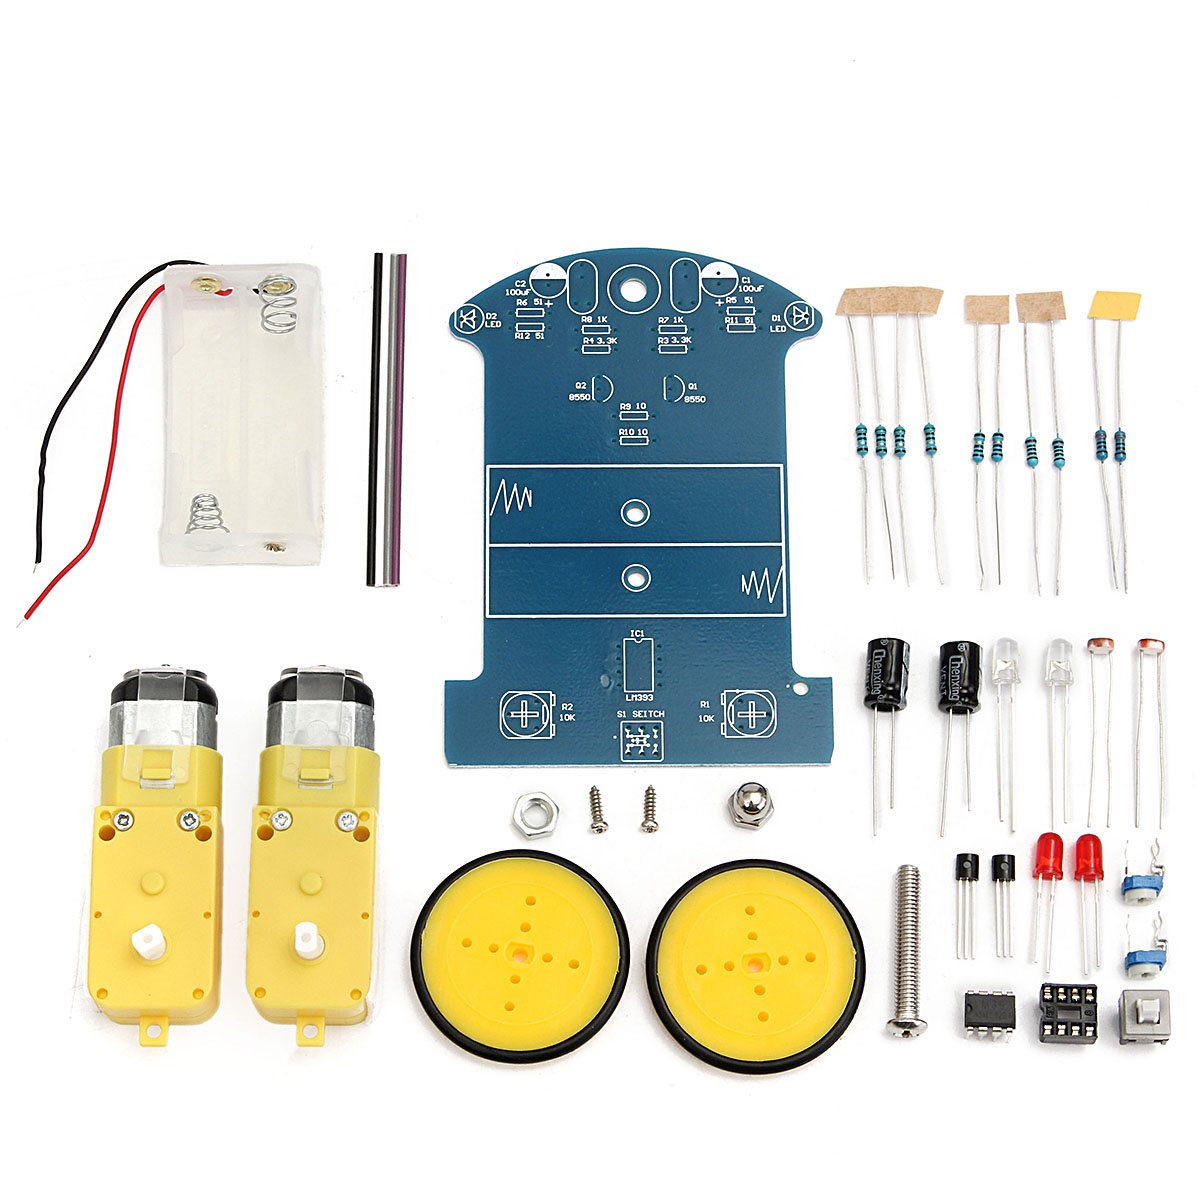 Hot New DIY Smart Tracking Robot Car Electronic Kit With Reduction Motor Set